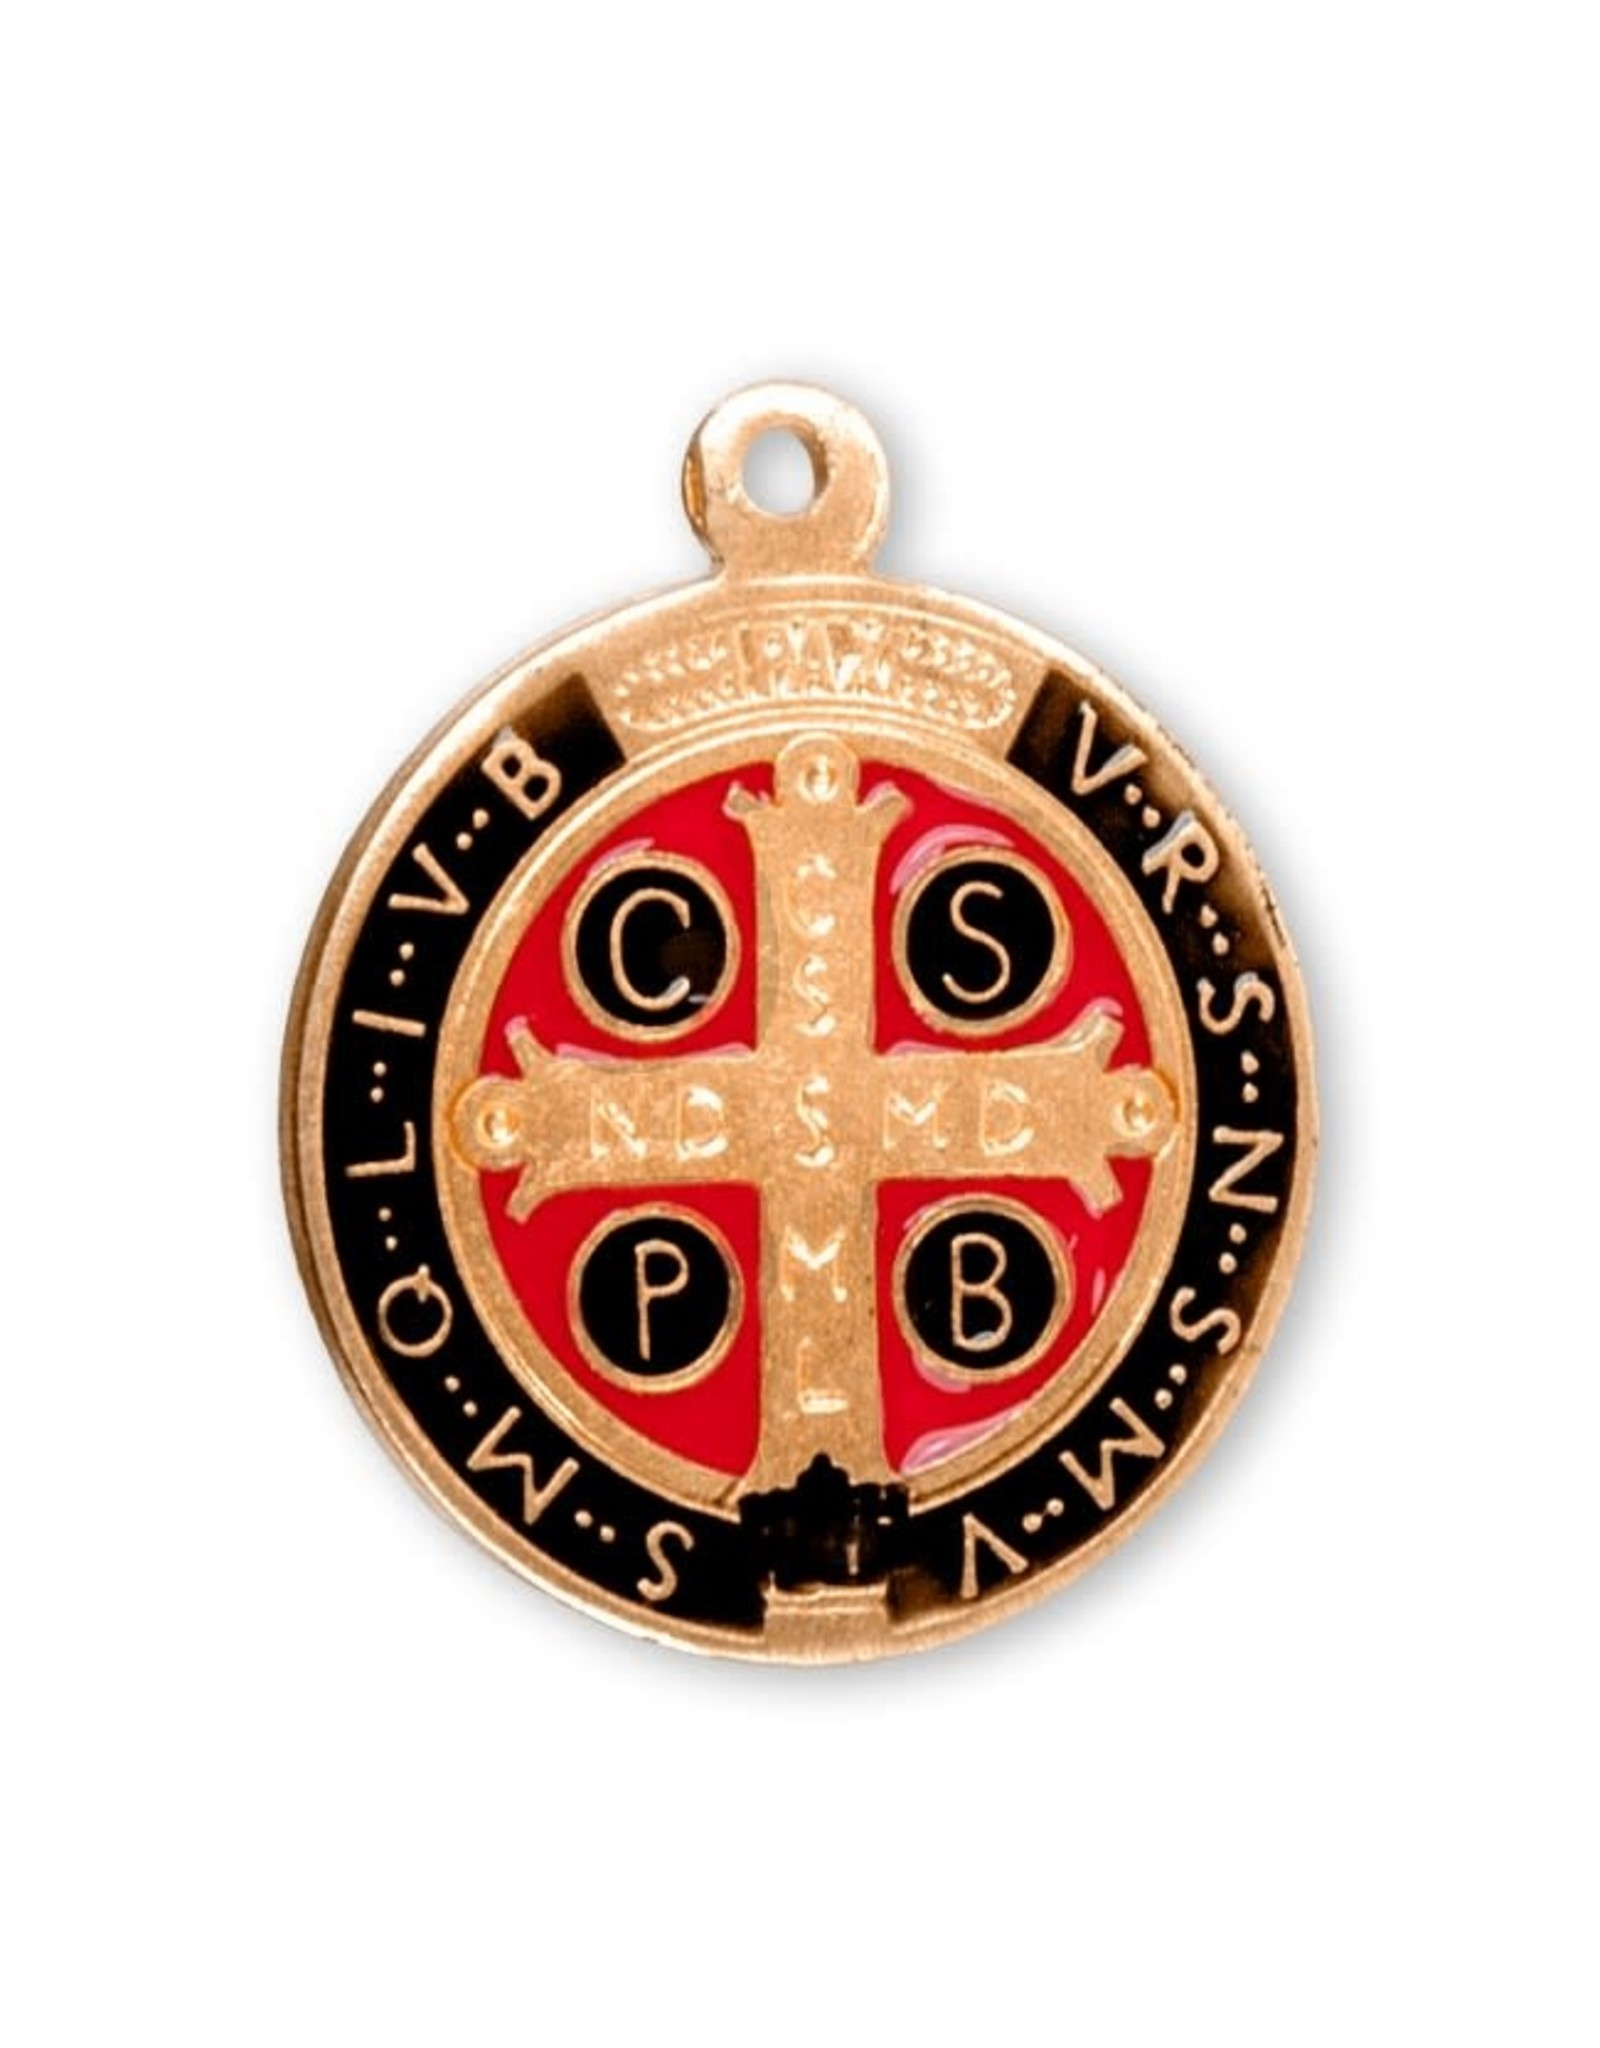 """HMH 16 Karat Gold Over Sterling Silver Round St. Benedict Jubilee Medal on 18"""" Chain, Boxed"""